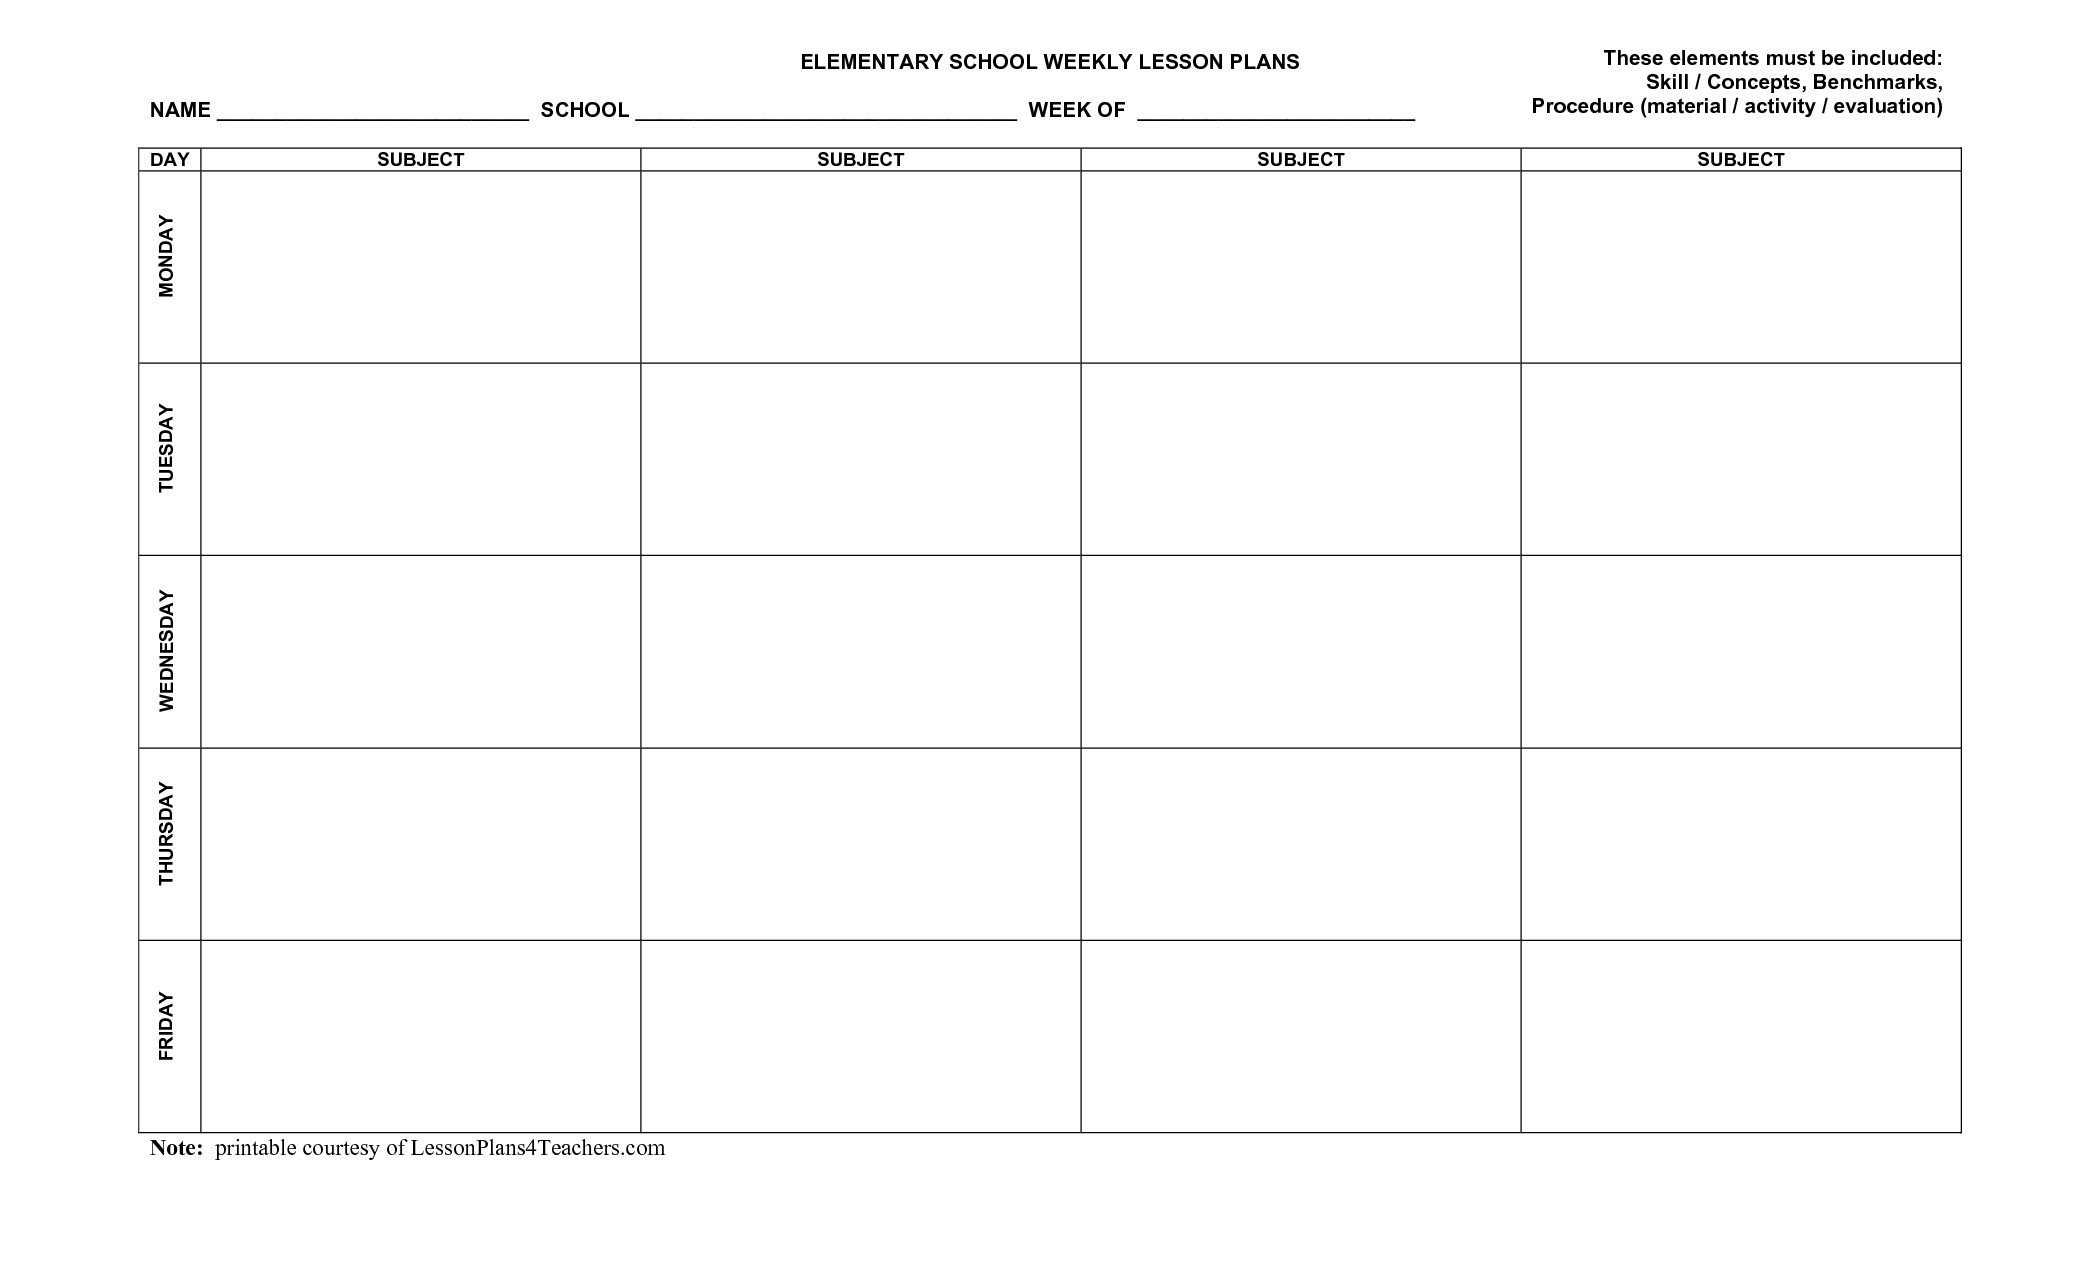 Blank Weekly Lesson Plan Templates MqfoTfaS